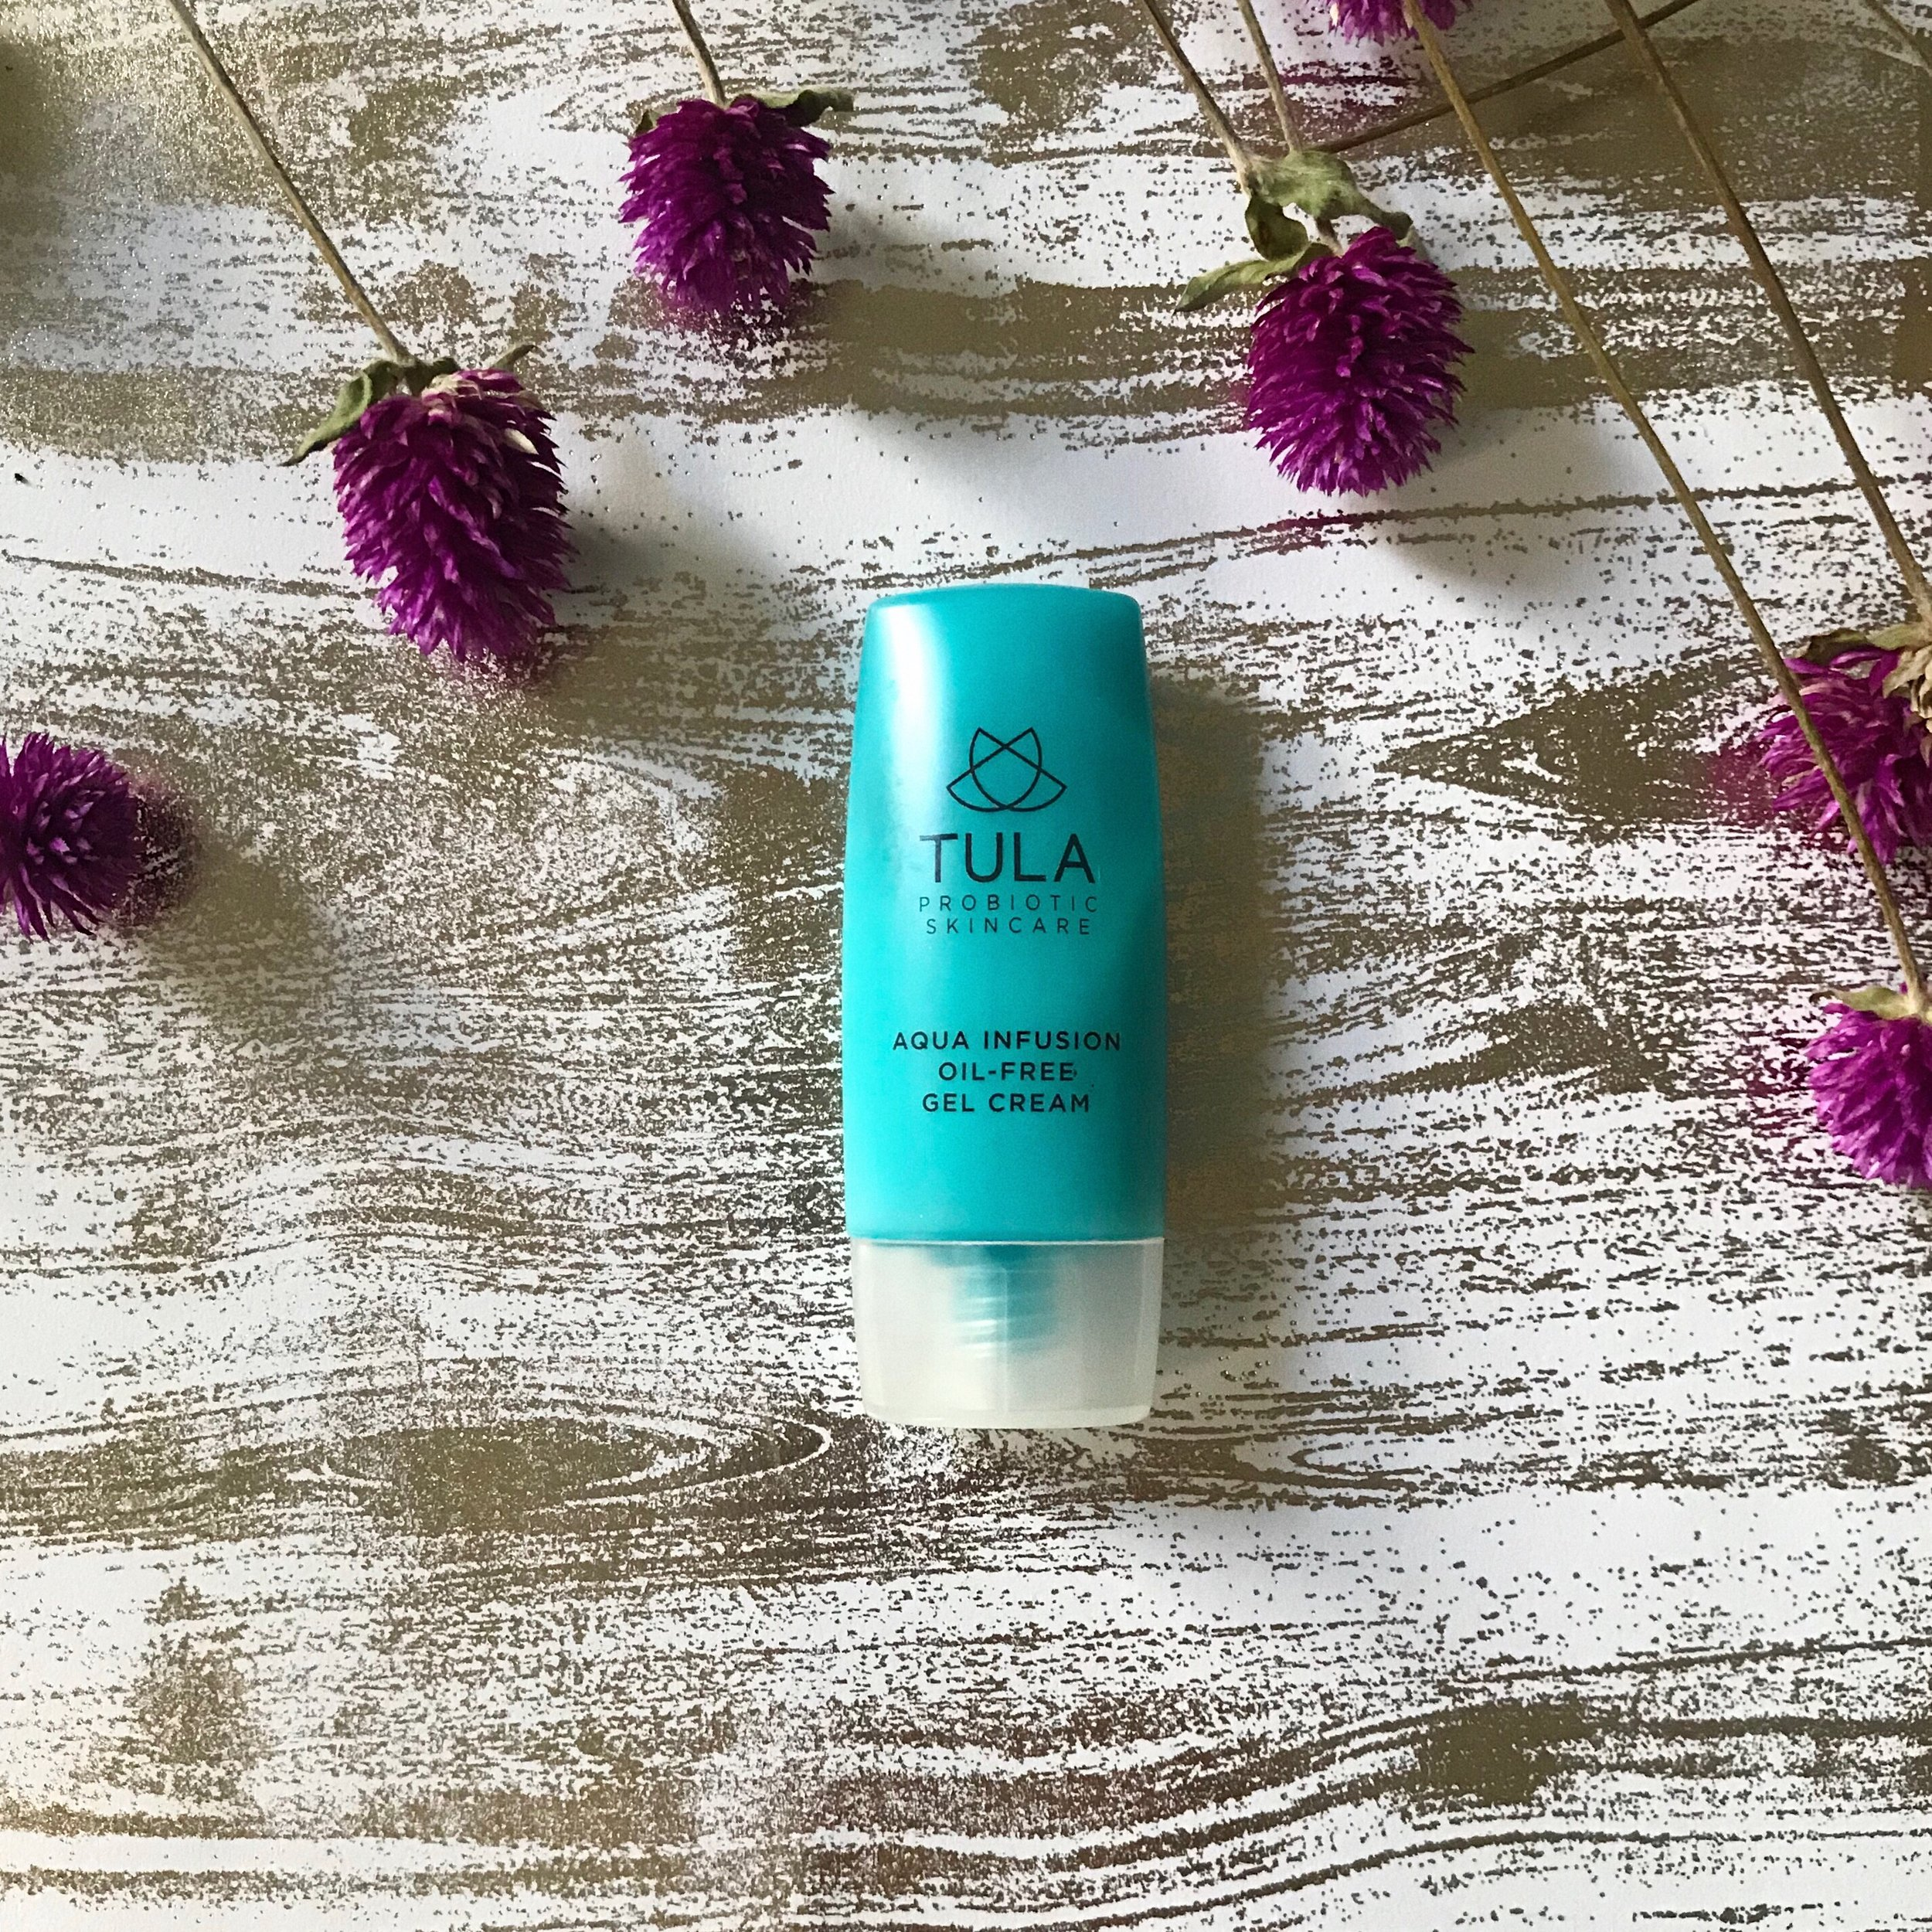 Aqua Infusion Oil-Free Gel Cream